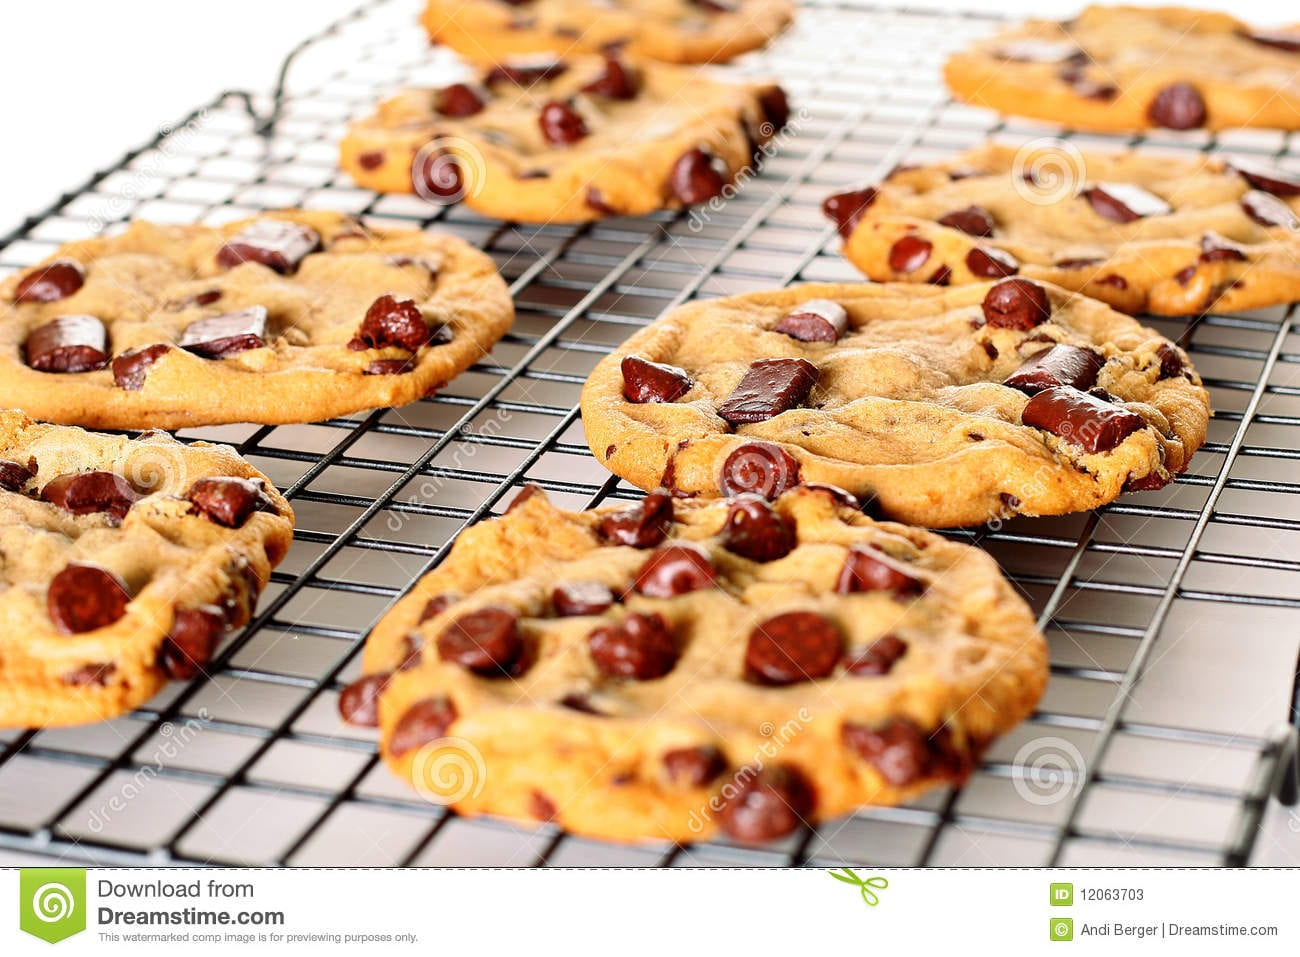 Chocolate Chip Cookies On Cooling Rack Upclose Stock Image